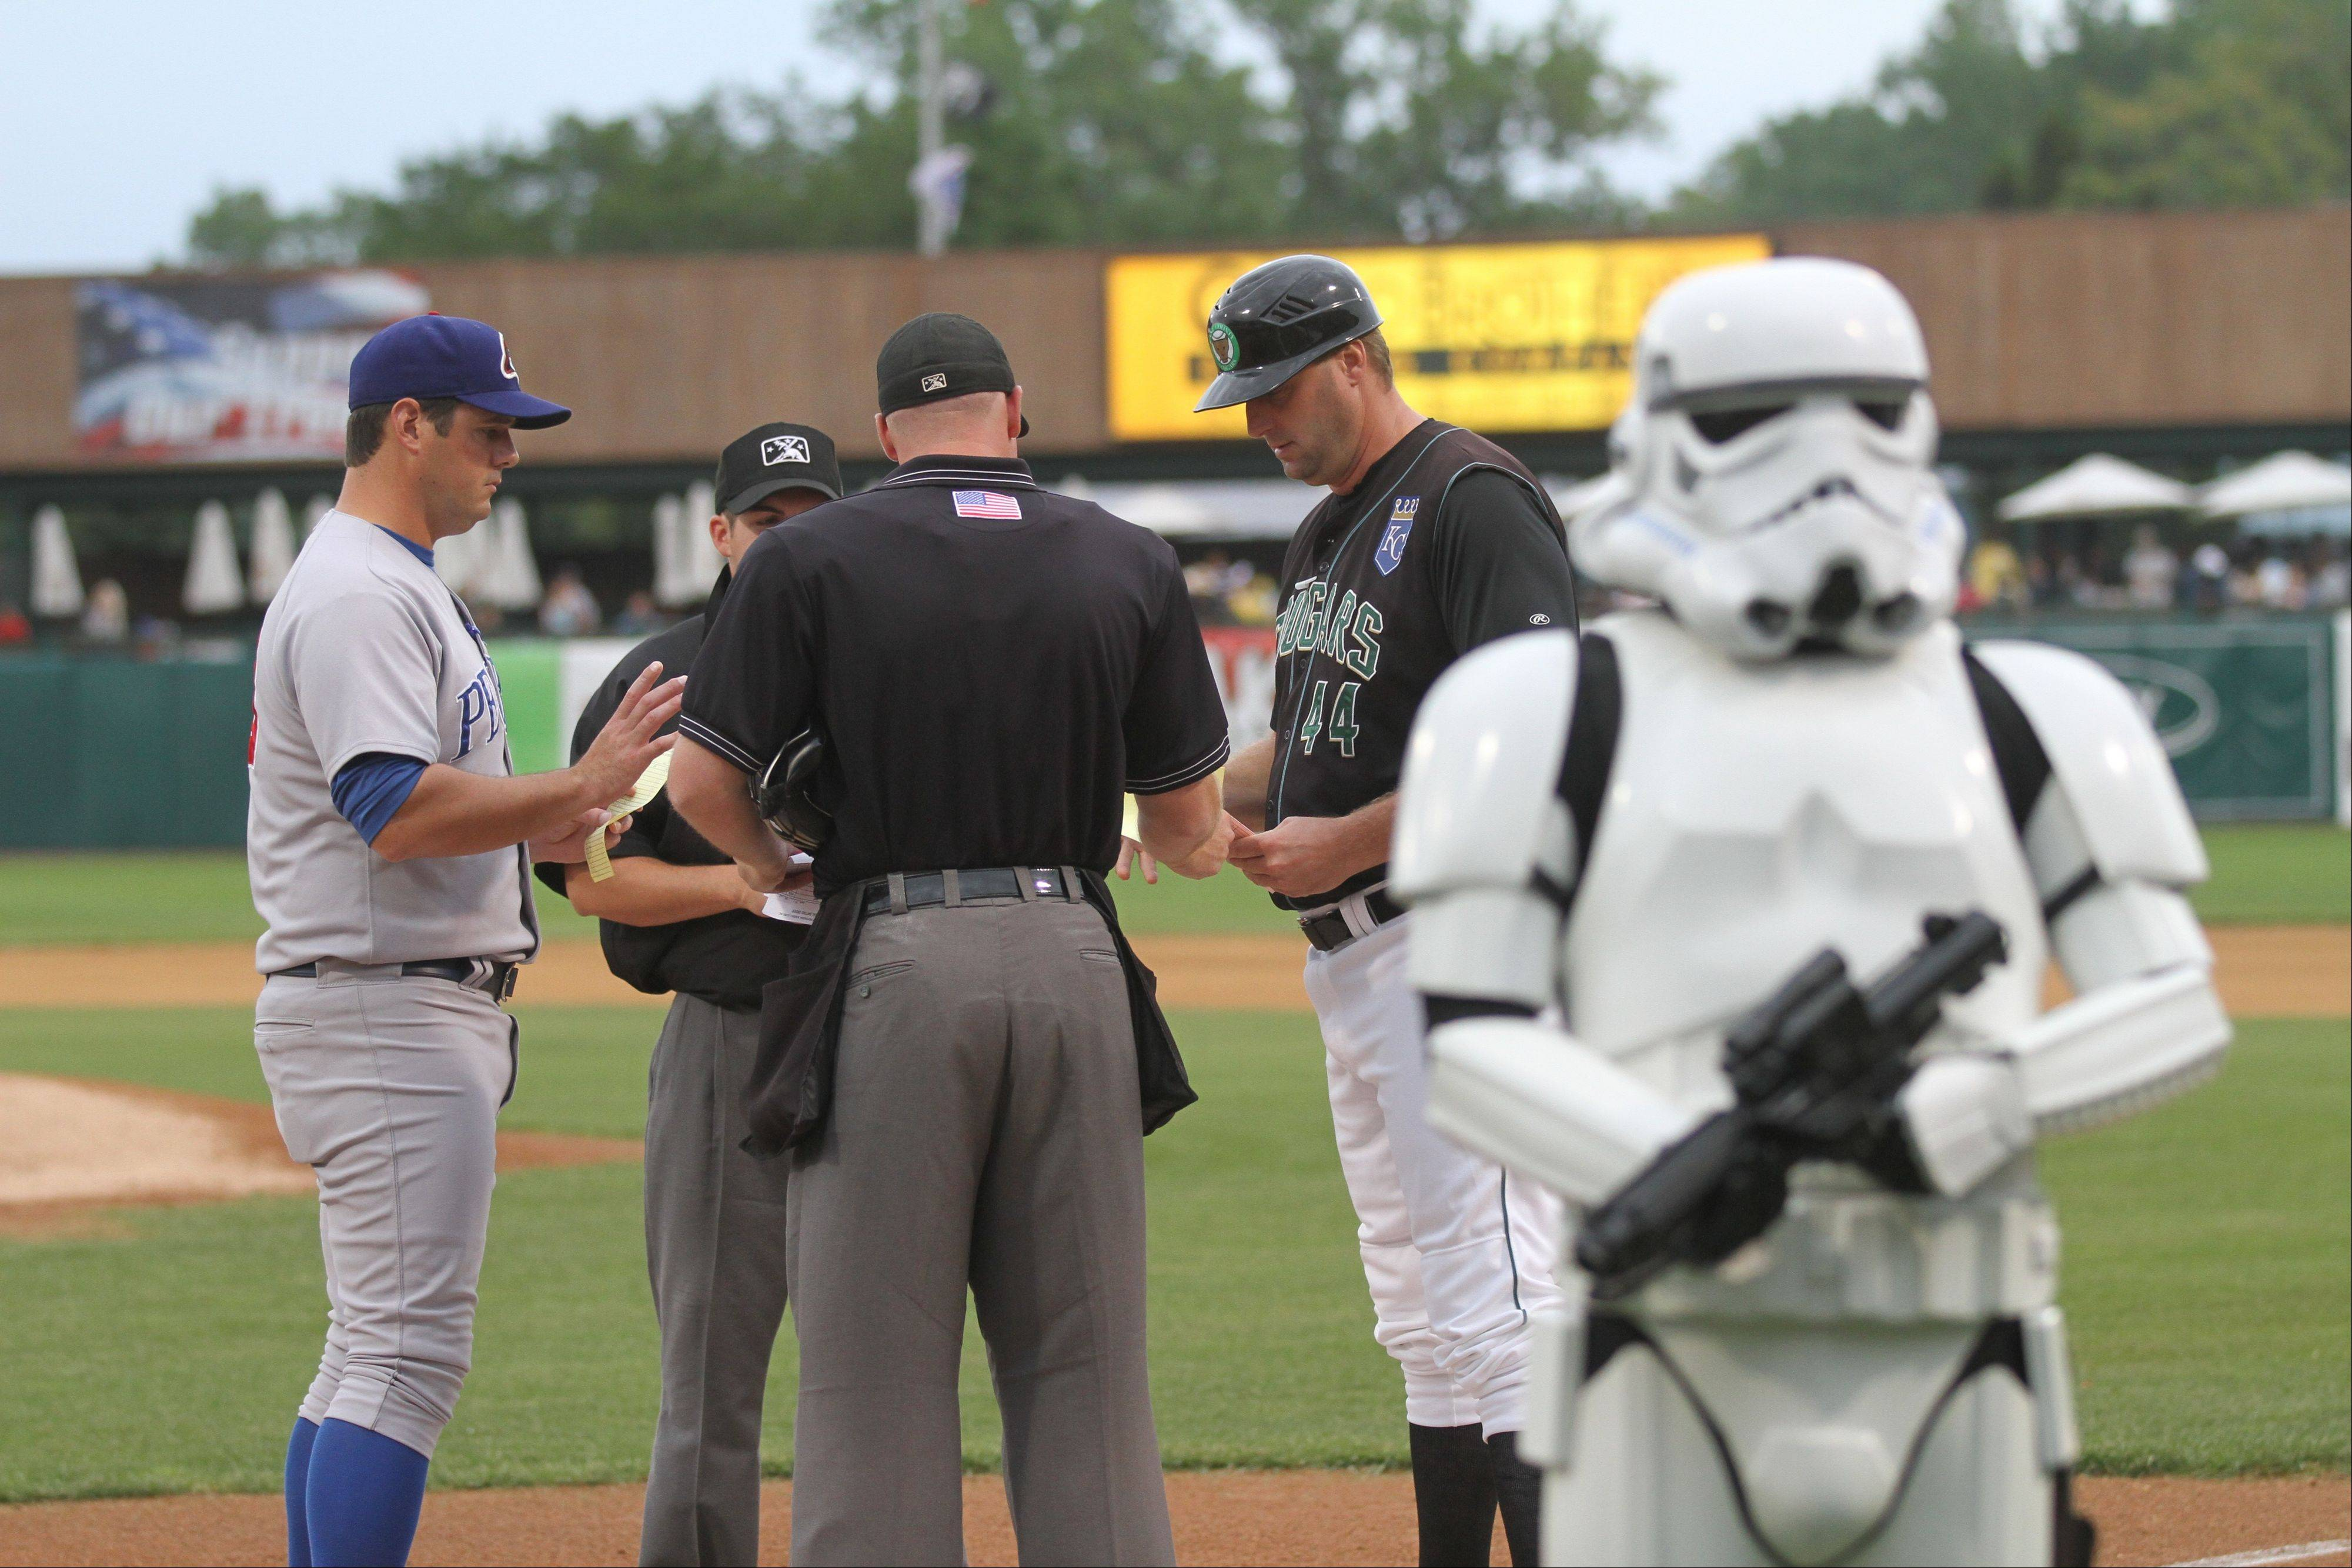 Storm troopers will take to the field when the Kane County Cougars host Star Wars night Saturday, Aug. 31, in Geneva.